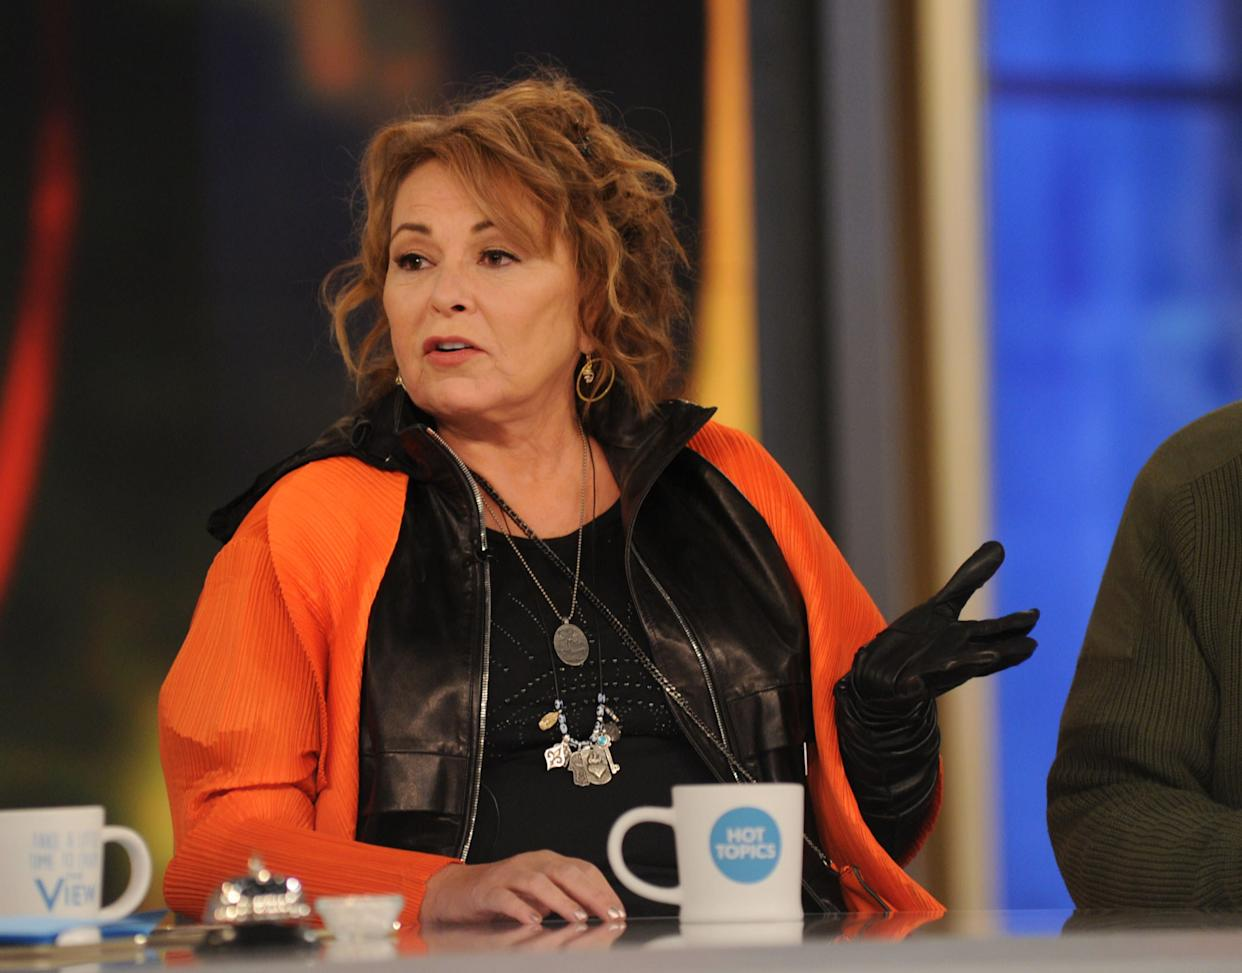 Roseanne Barr sparked widespread outrage after she sent out racist tweets about former Obama aide Valerie Jarrett. (Photo: Paula Lobo via Getty Images)